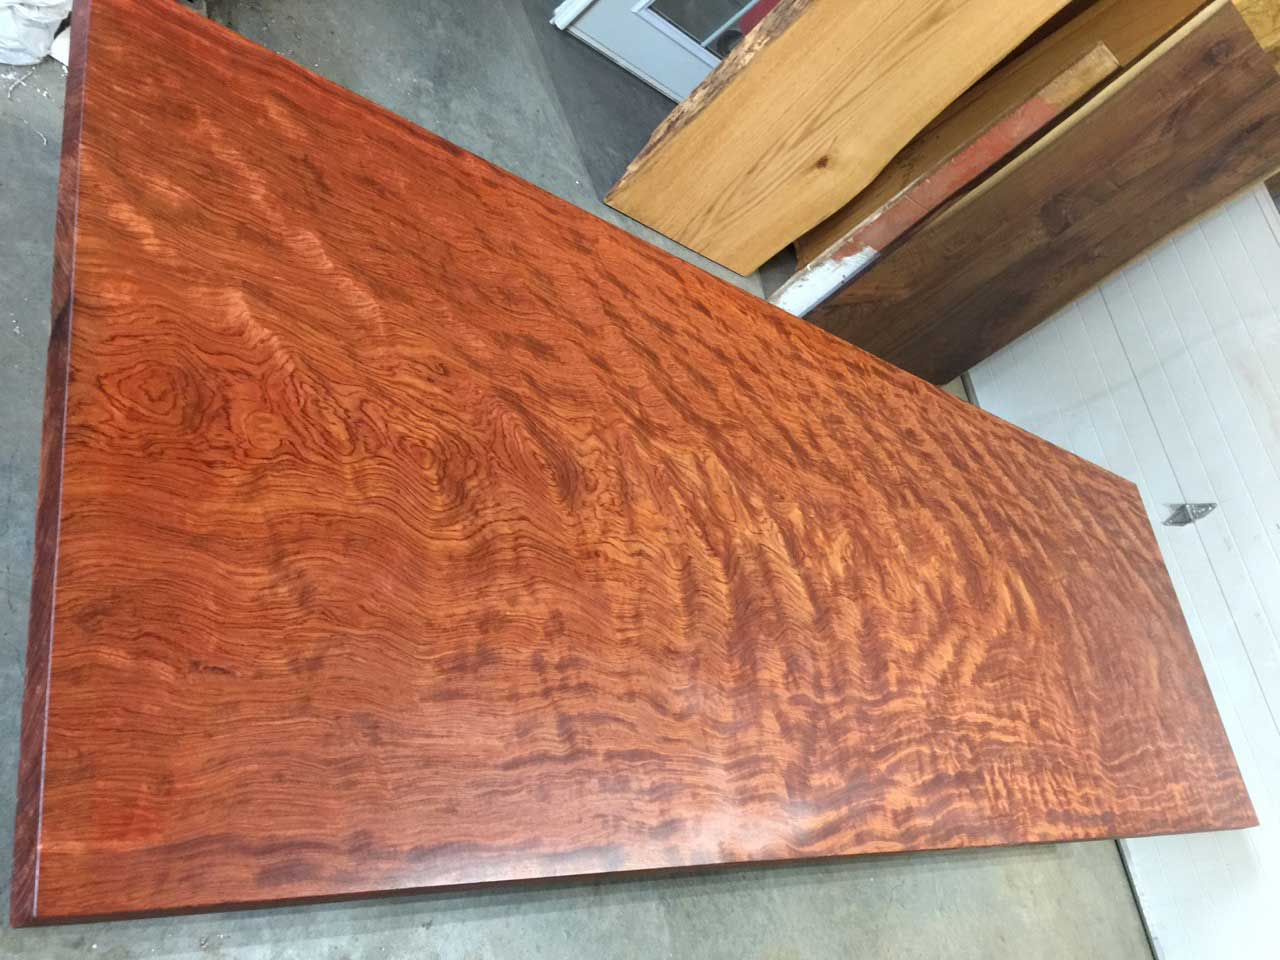 Figured Bubinga table top